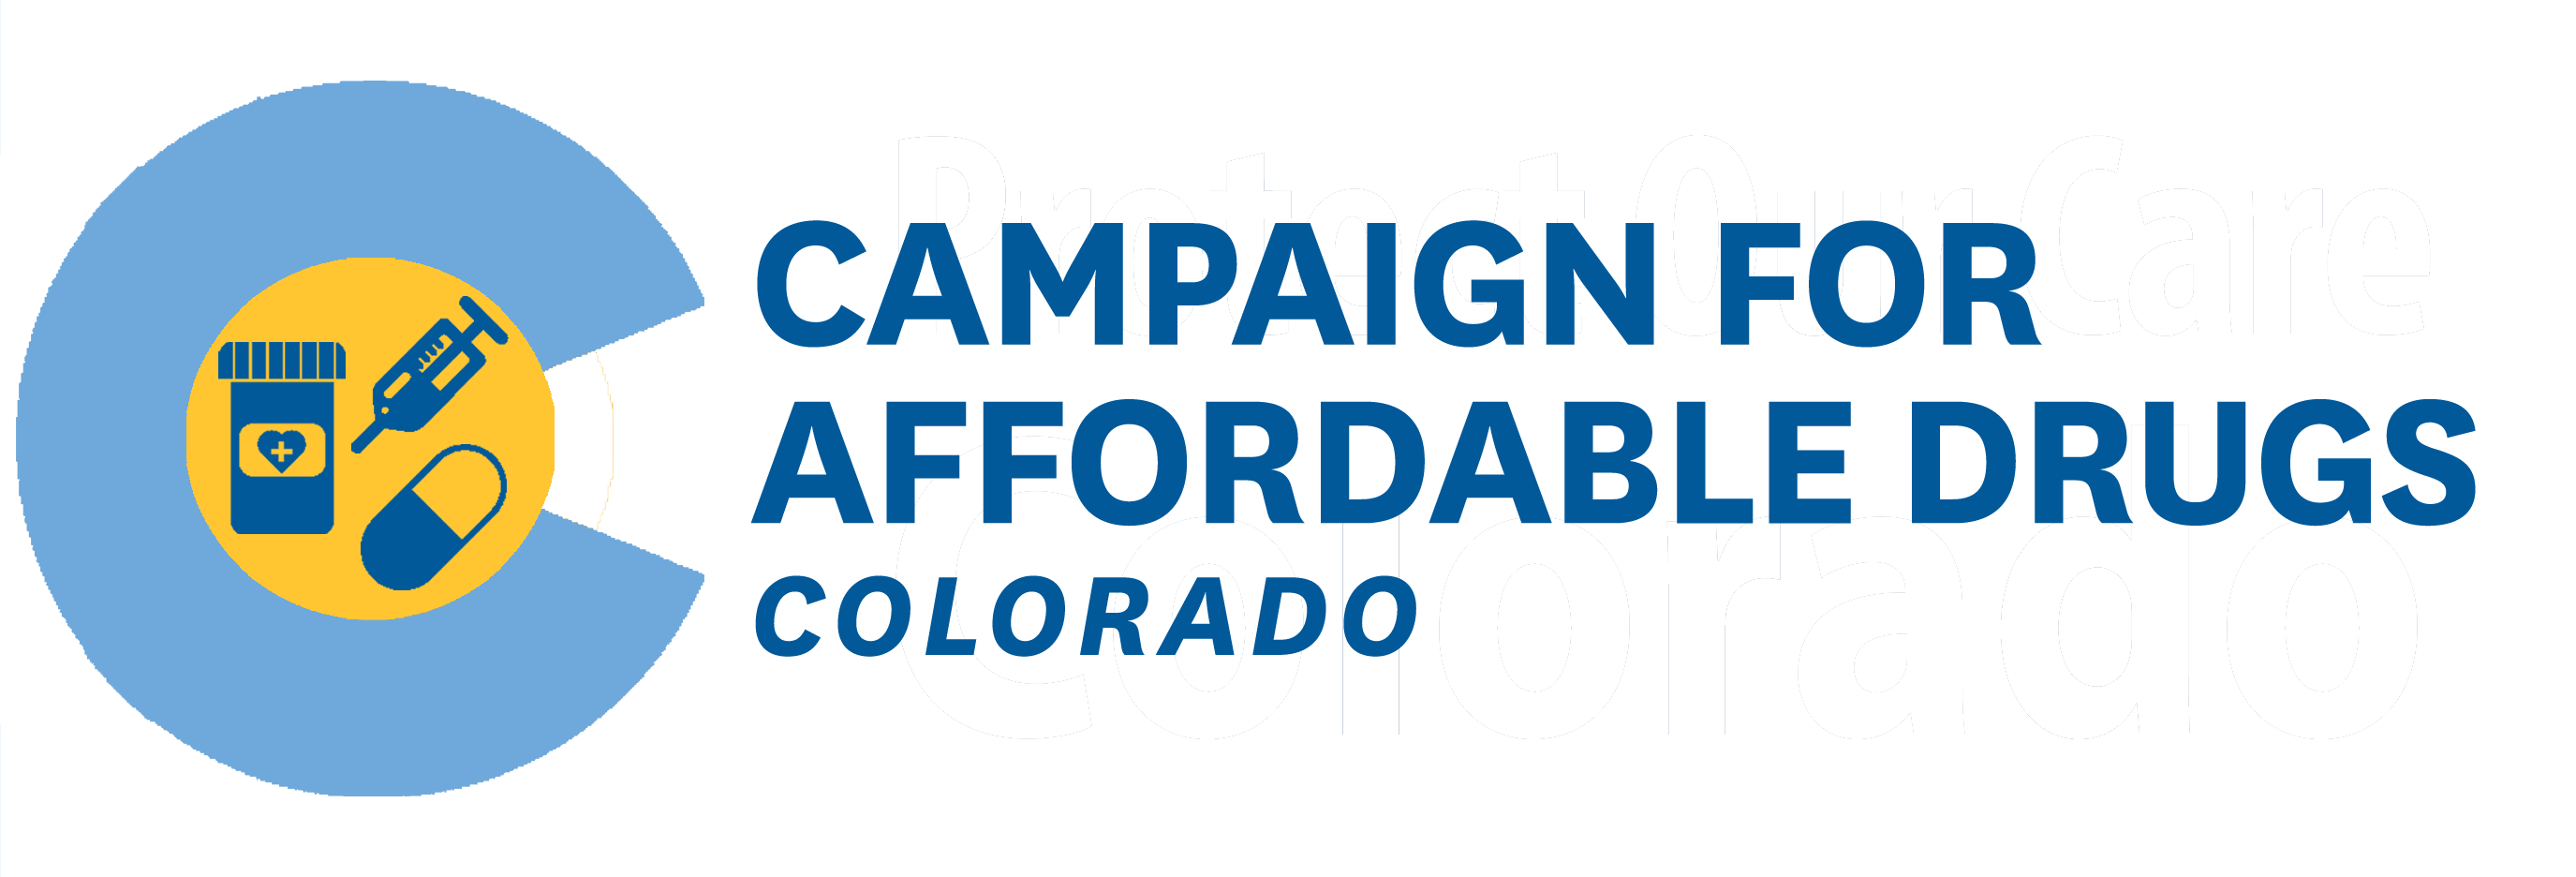 Campaign for Affordable Drugs Colorado